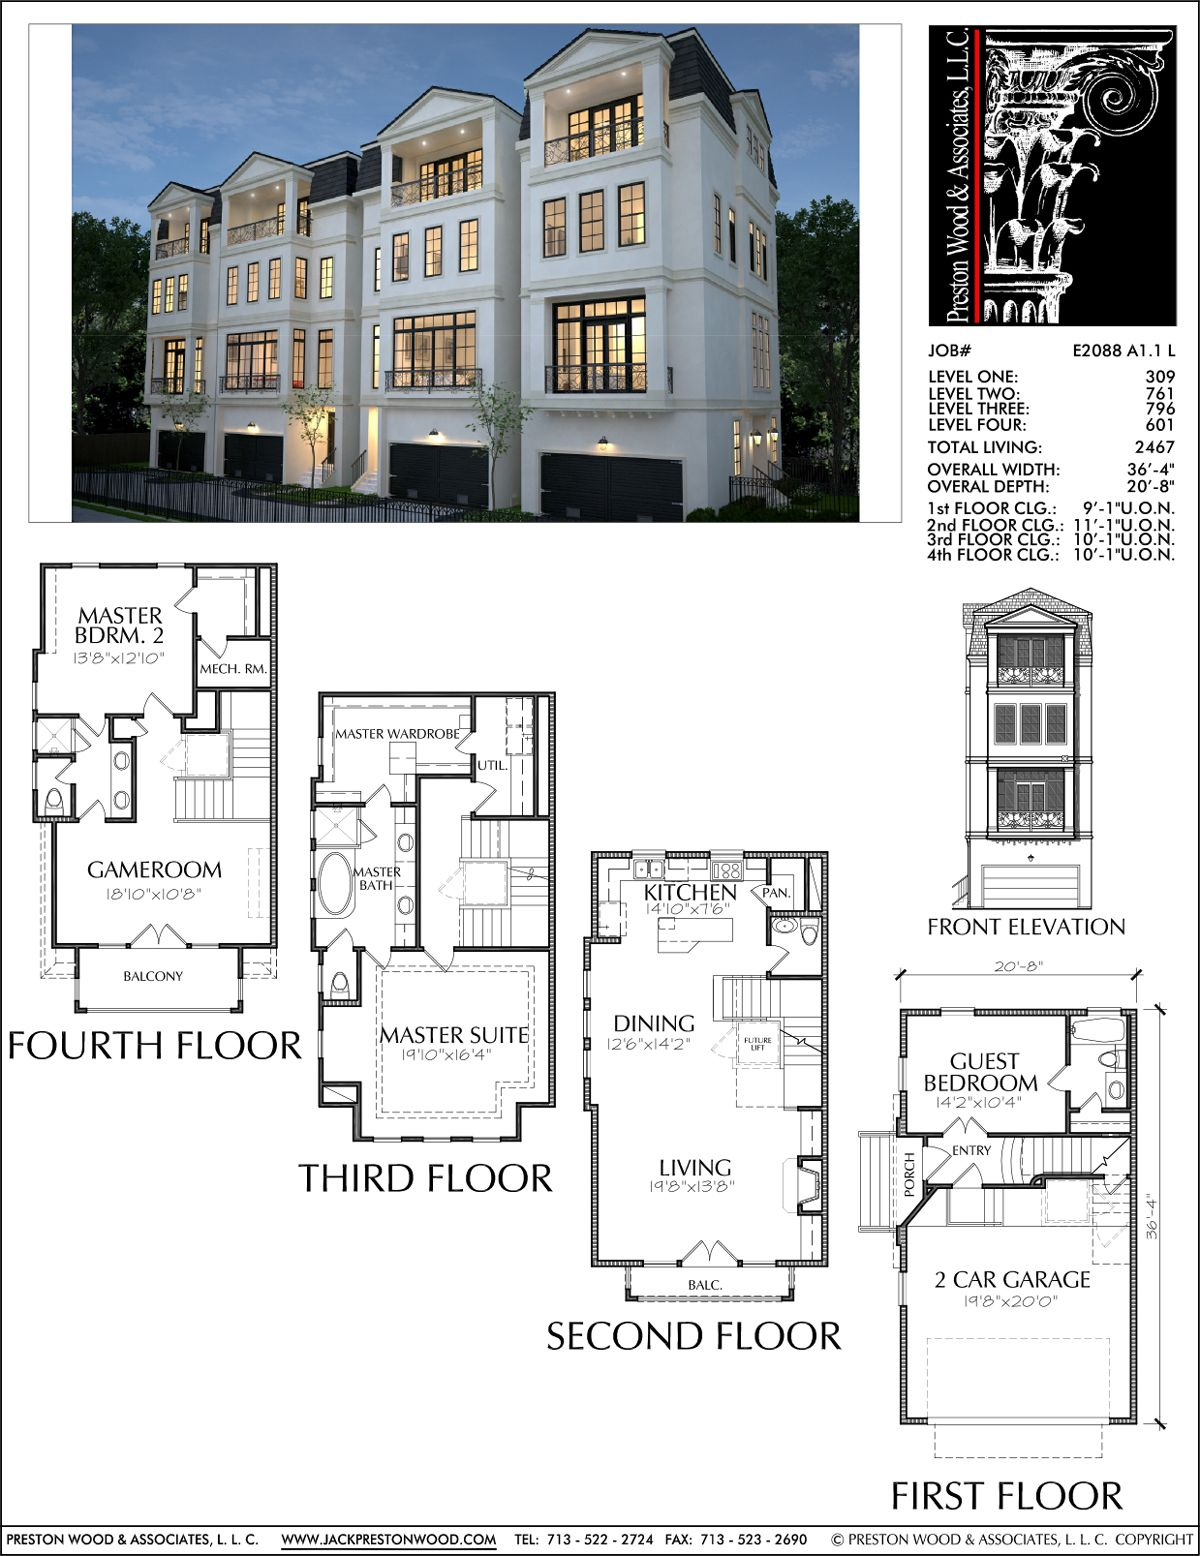 Townhome Plan E2088 A1 1 Develop It Pinterest